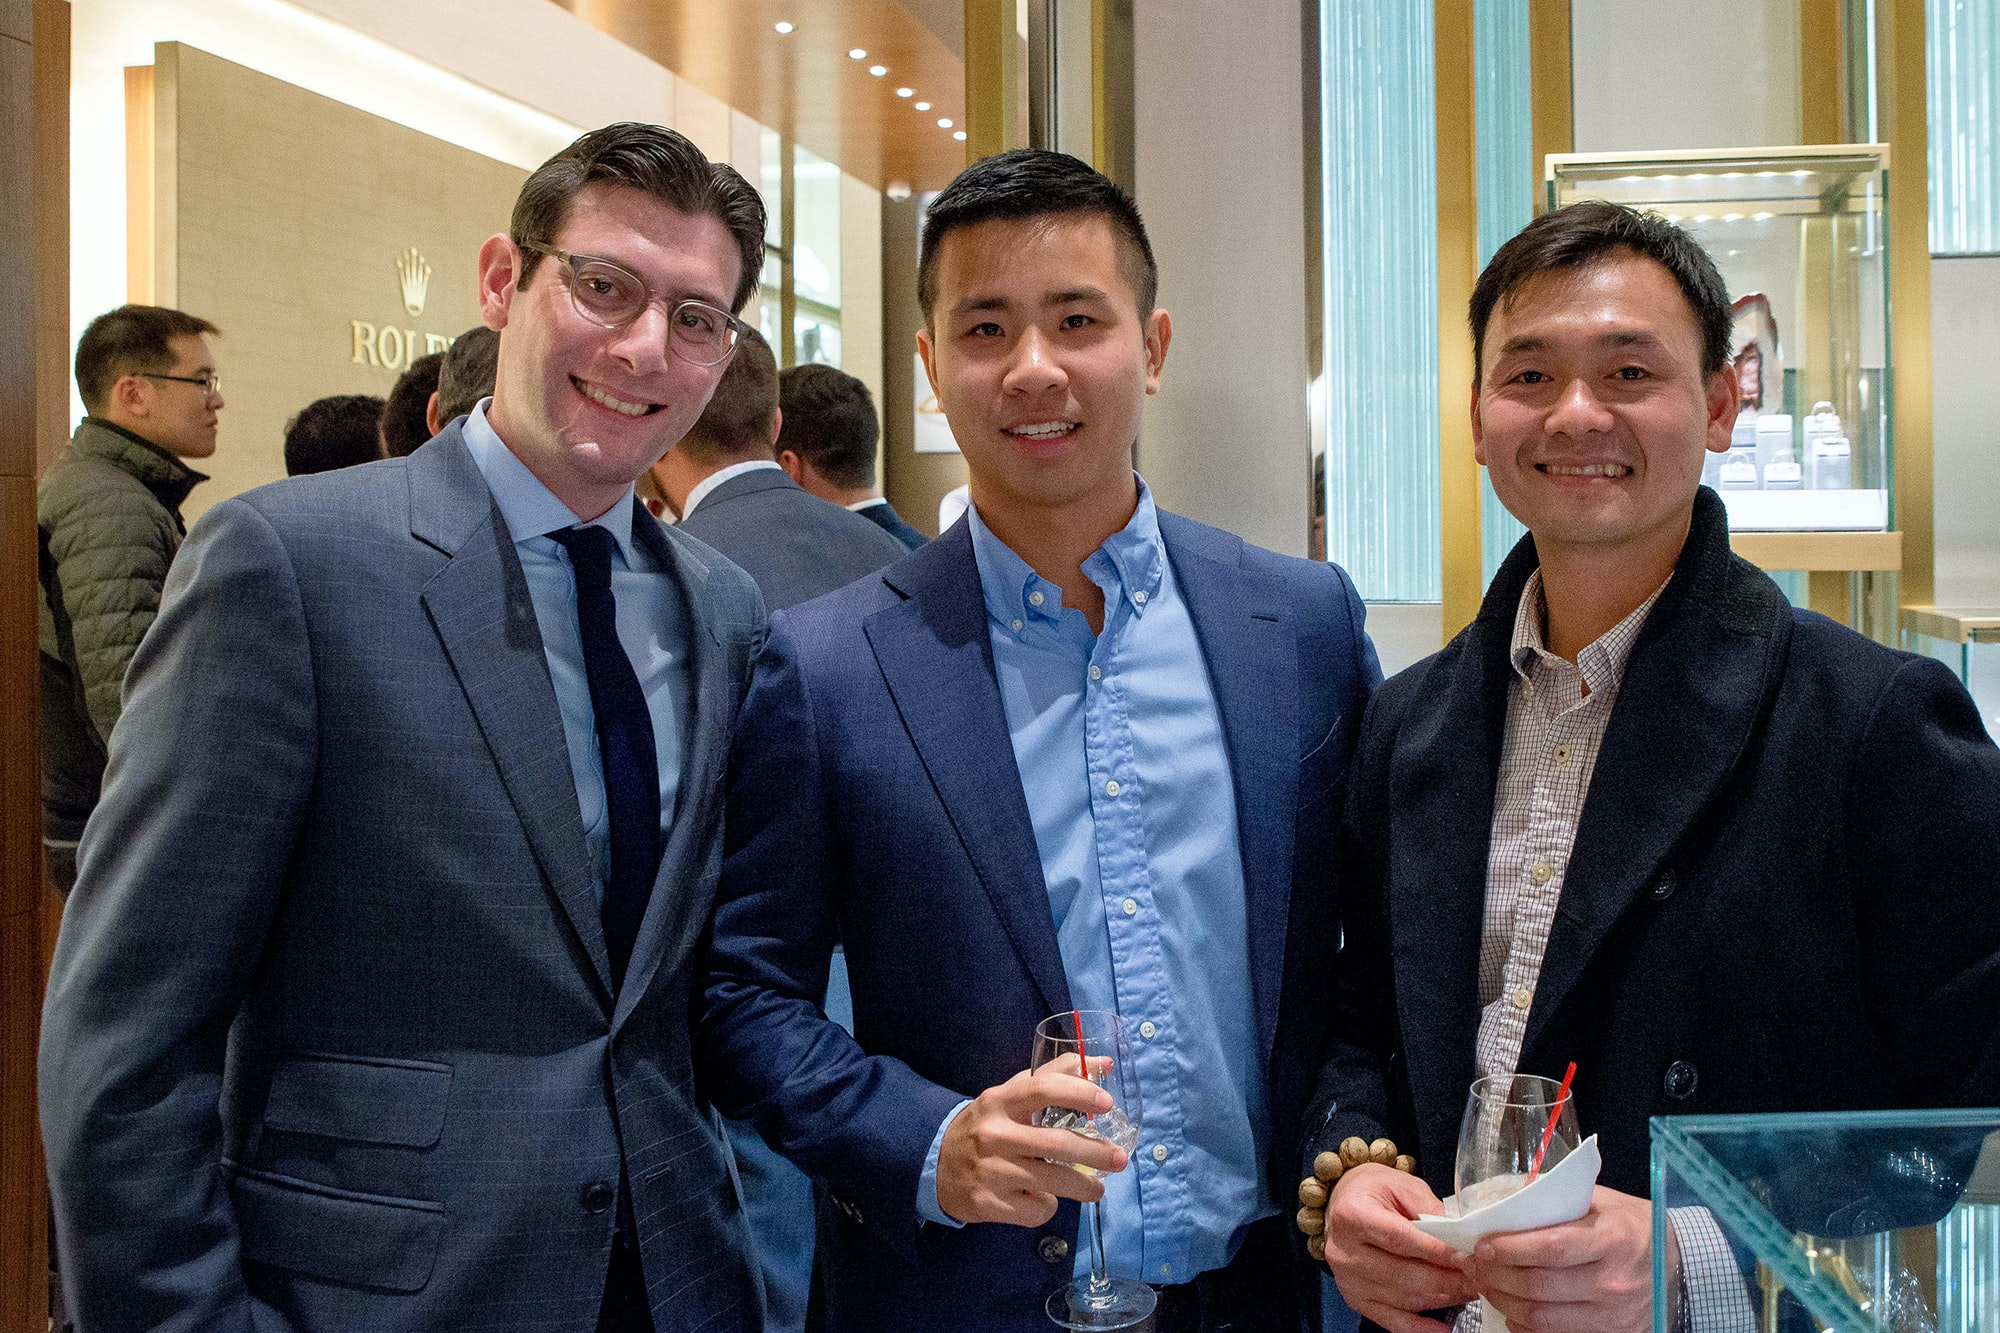 Photo Report: HODINKEE Celebrates London Jewelers' New Store In New York City's Oculus Photo Report: HODINKEE Celebrates London Jewelers' New Store In New York City's Oculus 20161109 LondonJewelersxHodinkee 082